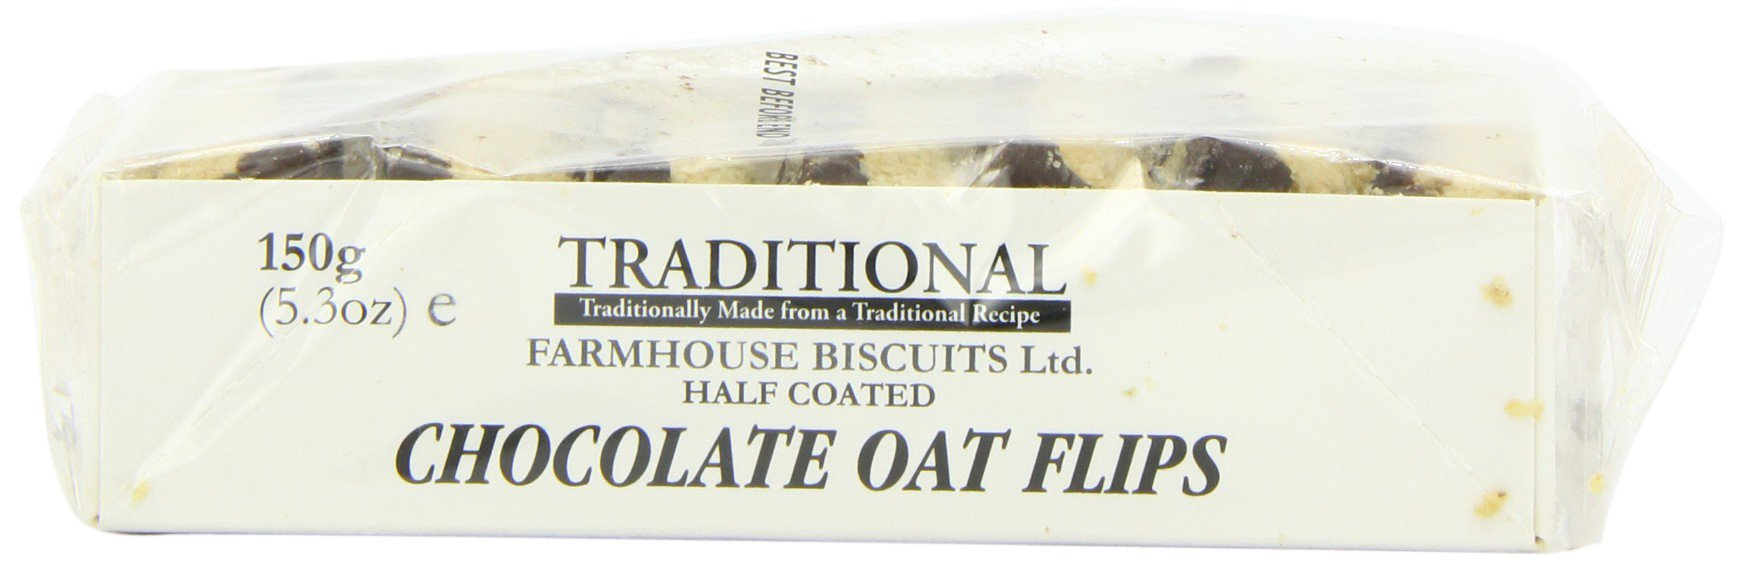 Farmhouse Biscuits Chocolate Mini Flips Buy Online In Guernsey At Desertcart